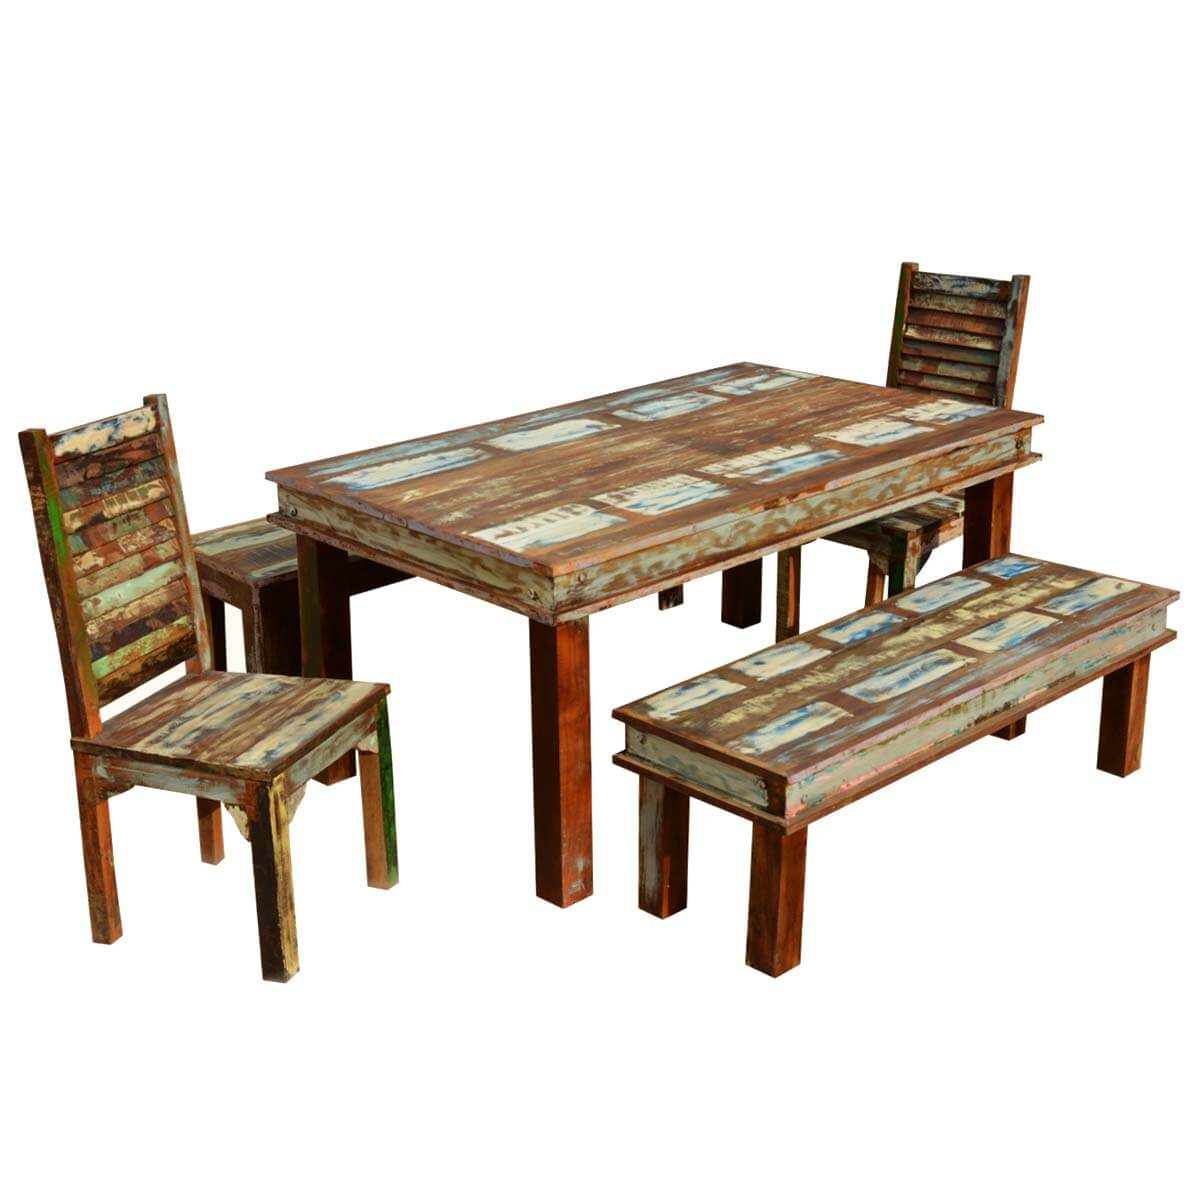 Sierra Reclaimed Wood Dining Table With 2 Chairs Benches